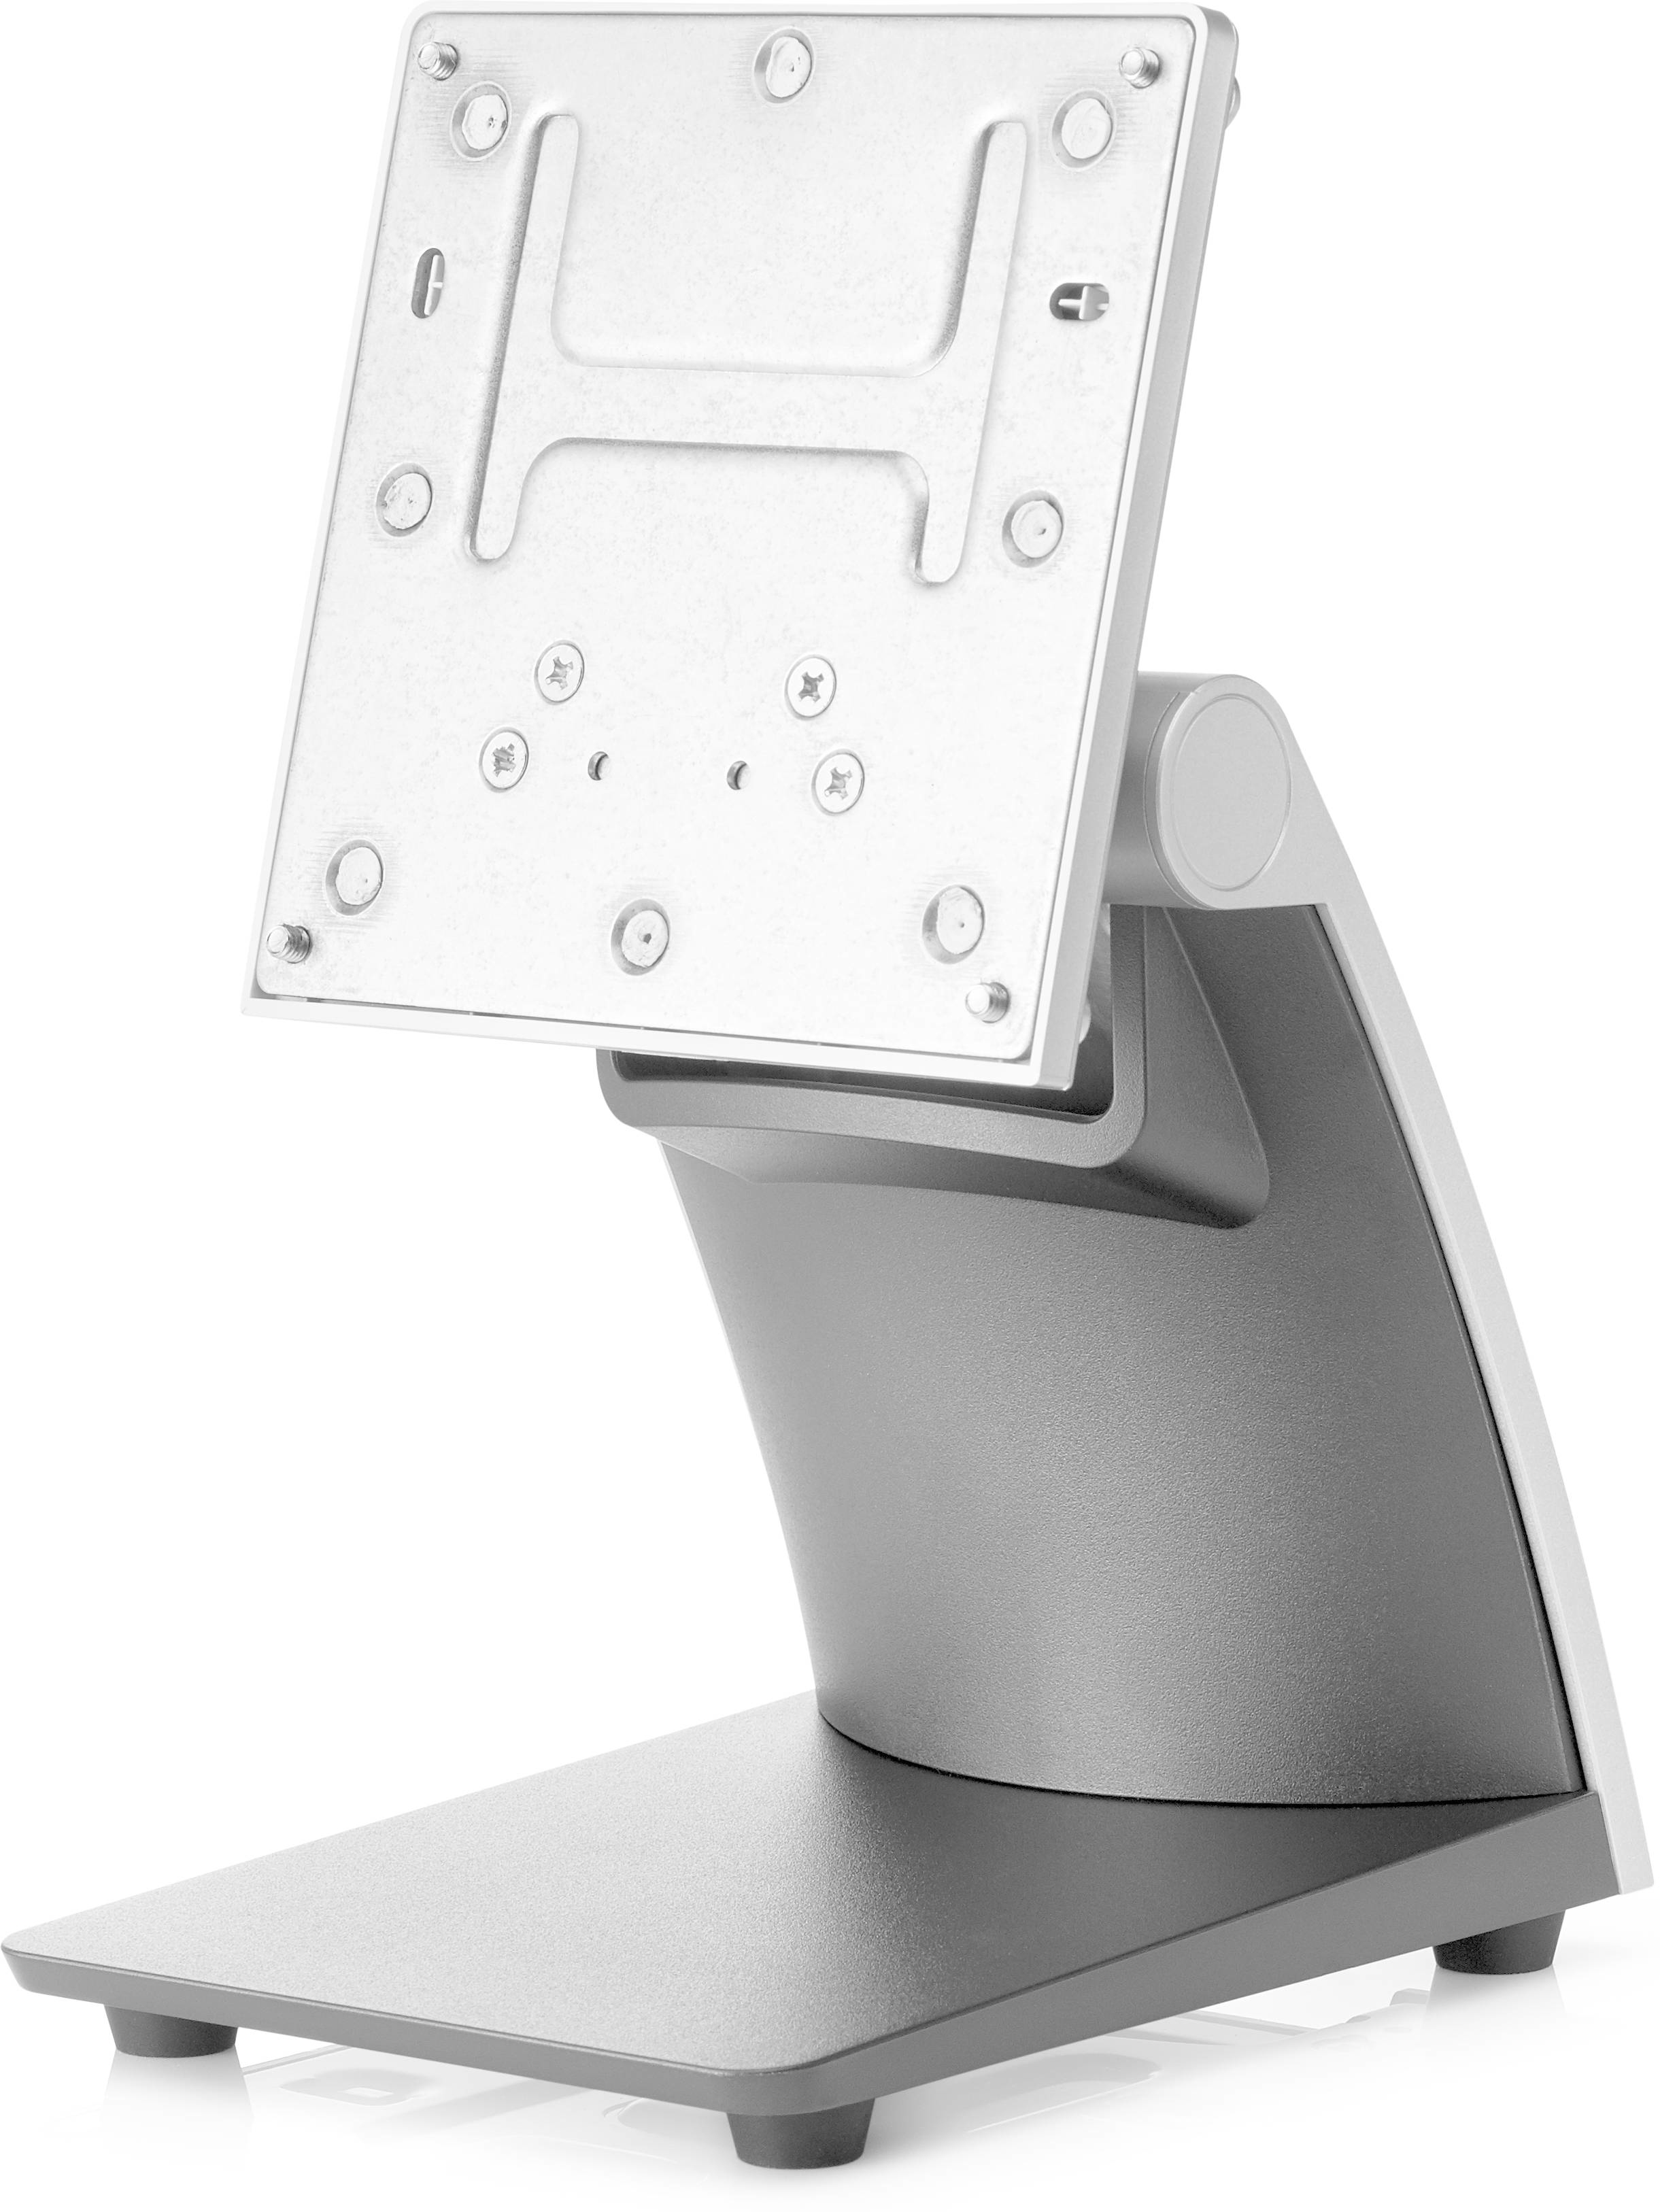 HP - Stand For LCD Display - For HP L7016t Retail Touch Monitor, RP9 G1 Retail System 9118 W0Q45AA - C2000